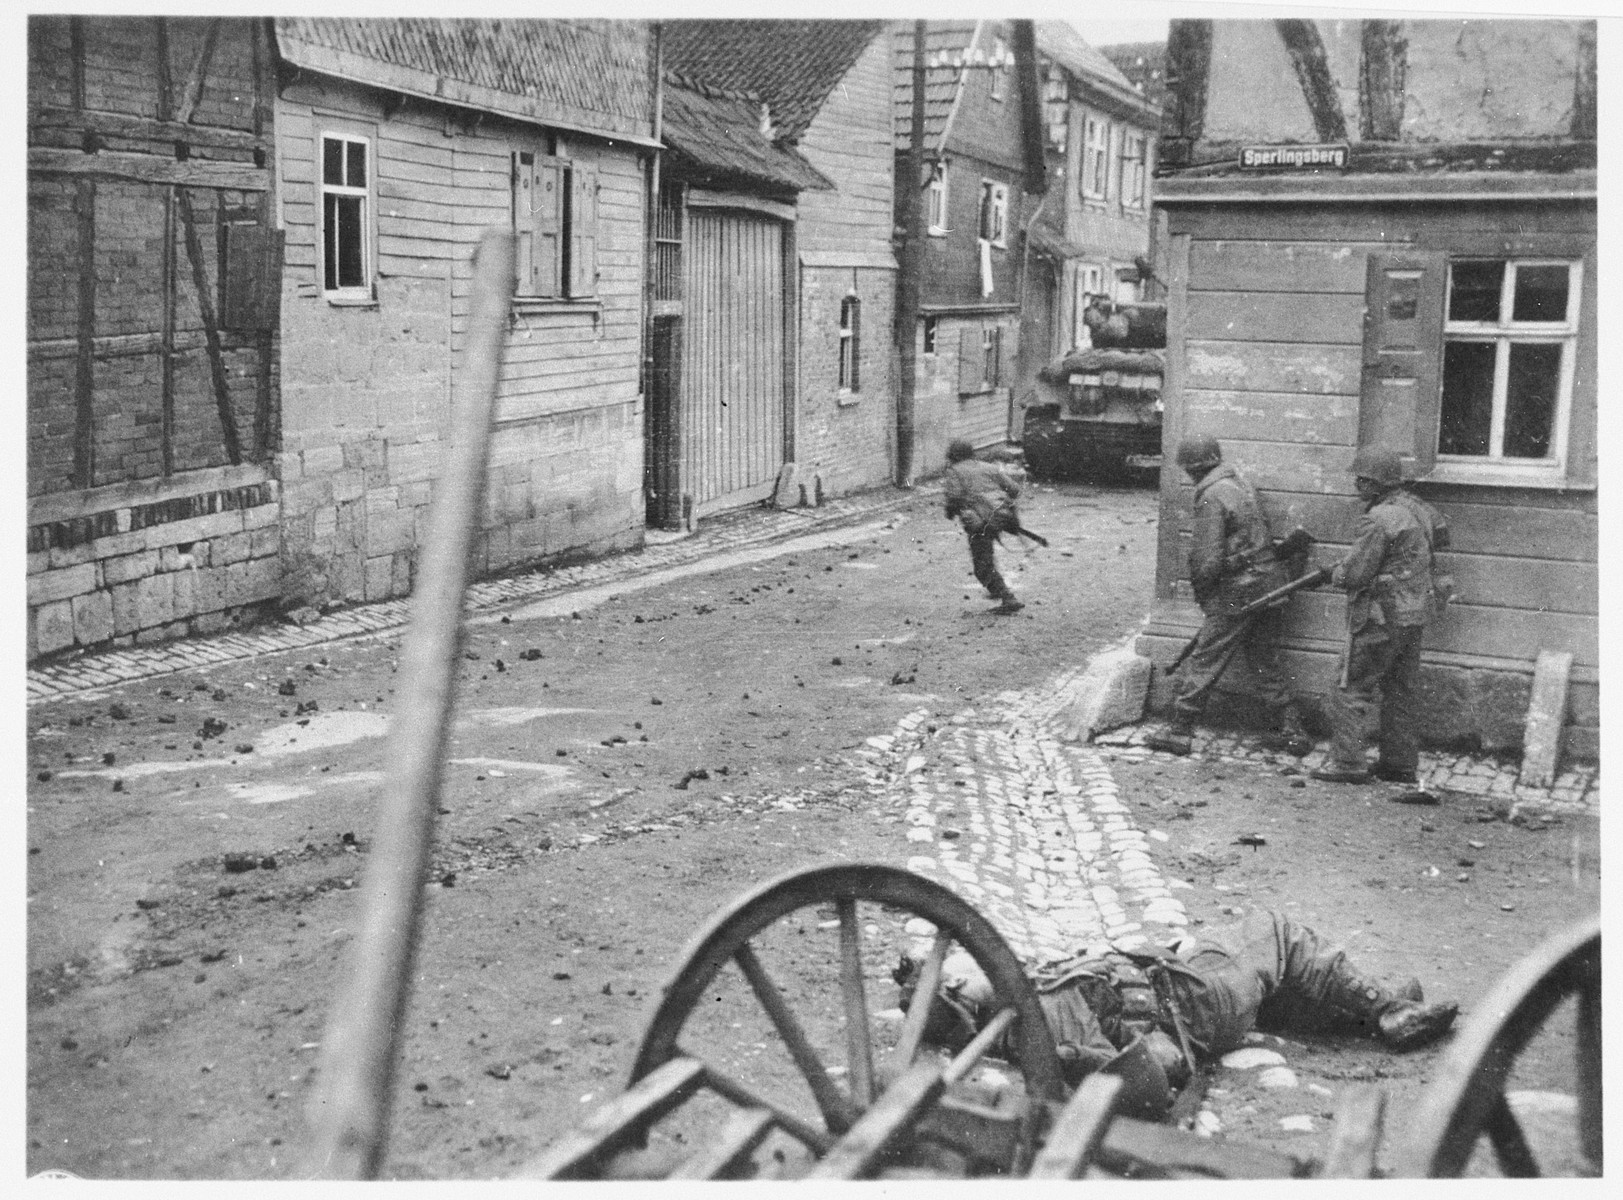 American troops advance through the streets of Aachen during the liberation of Germany.